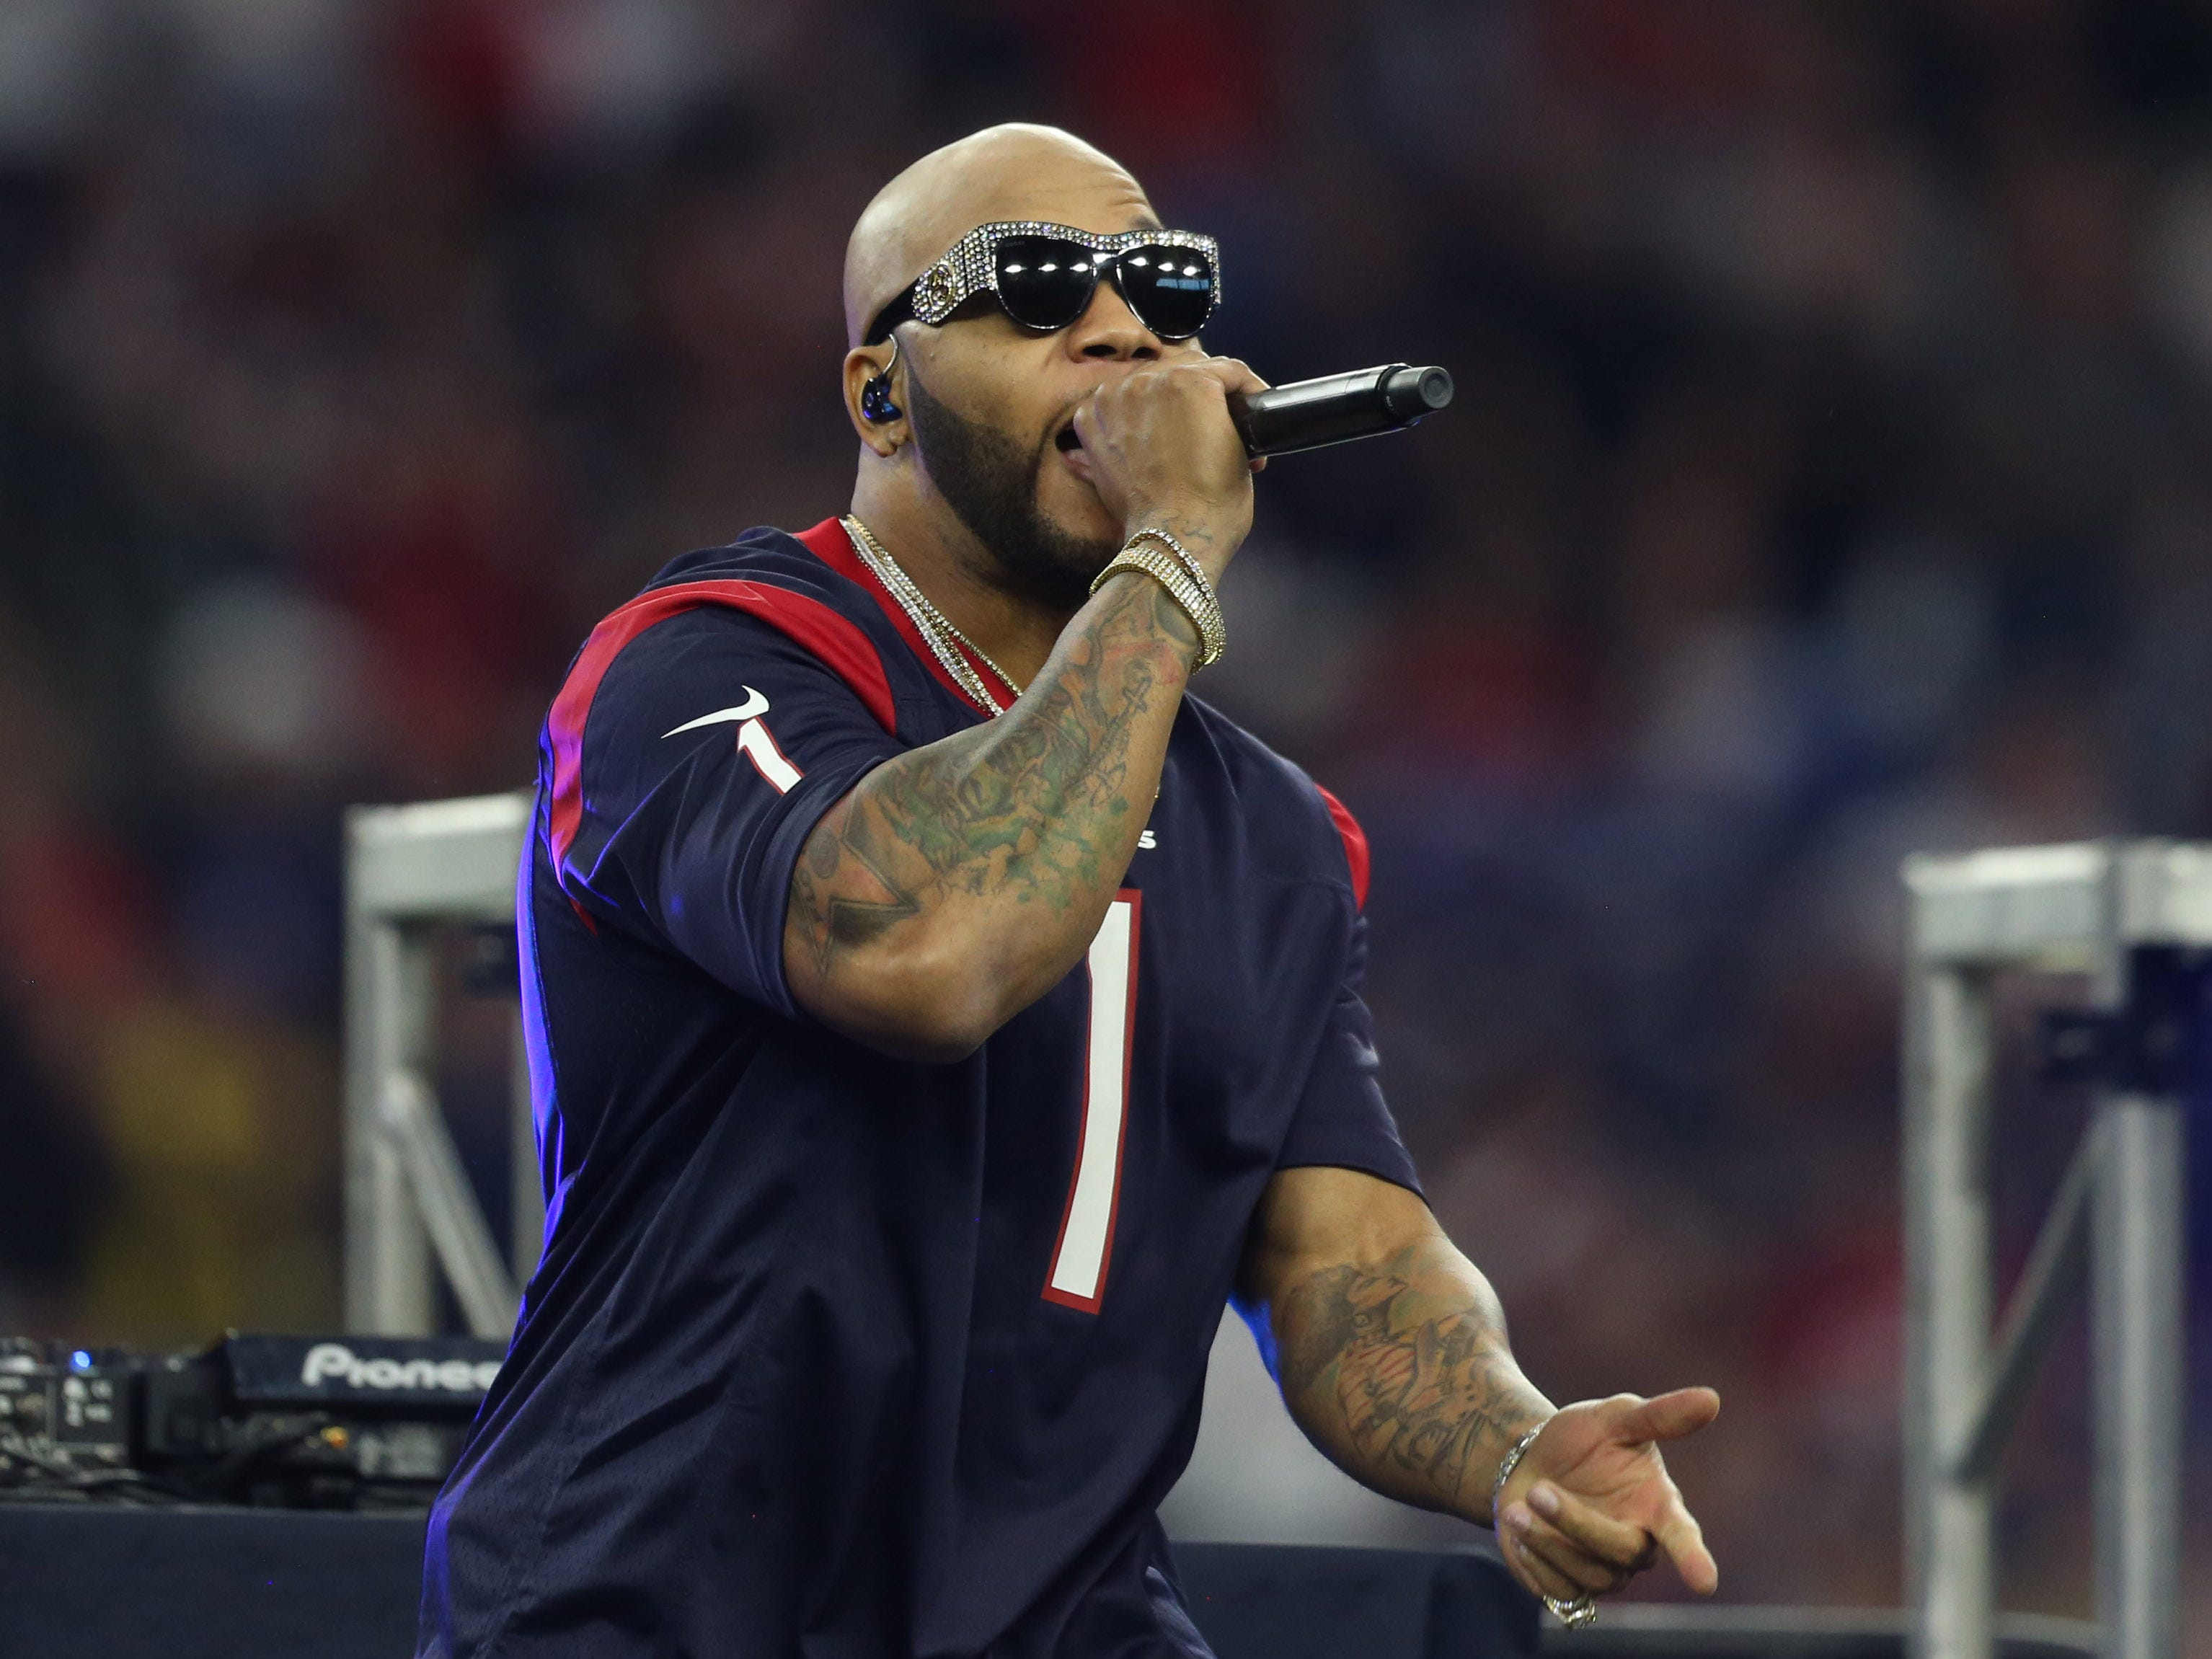 Jan 5, 2019; Houston, TX, USA; Recording artist Flo Rida performs at halftime of a AFC Wild Card playoff football game between the Indianapolis Colts and Houston Texans at NRG Stadium. Mandatory Credit: Thomas B. Shea-USA TODAY Sports ORG XMIT: USATSI-400674 ORIG FILE ID:  20190105_jel_sy9_081.jpg